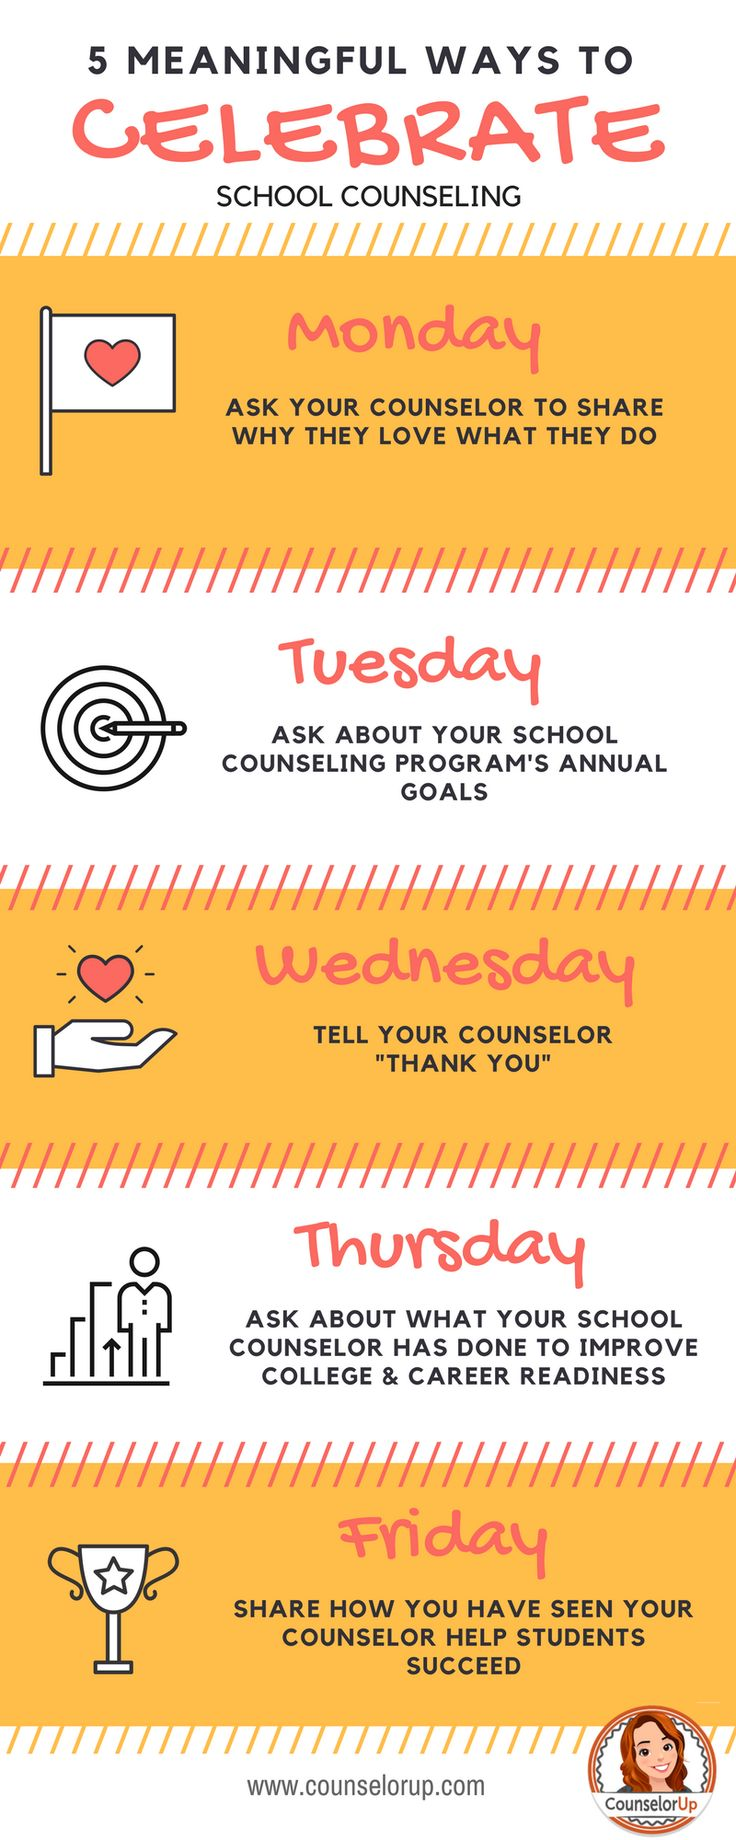 Celebrate National School Counseling week with meaning. Share with administrators, parents, or teachers.